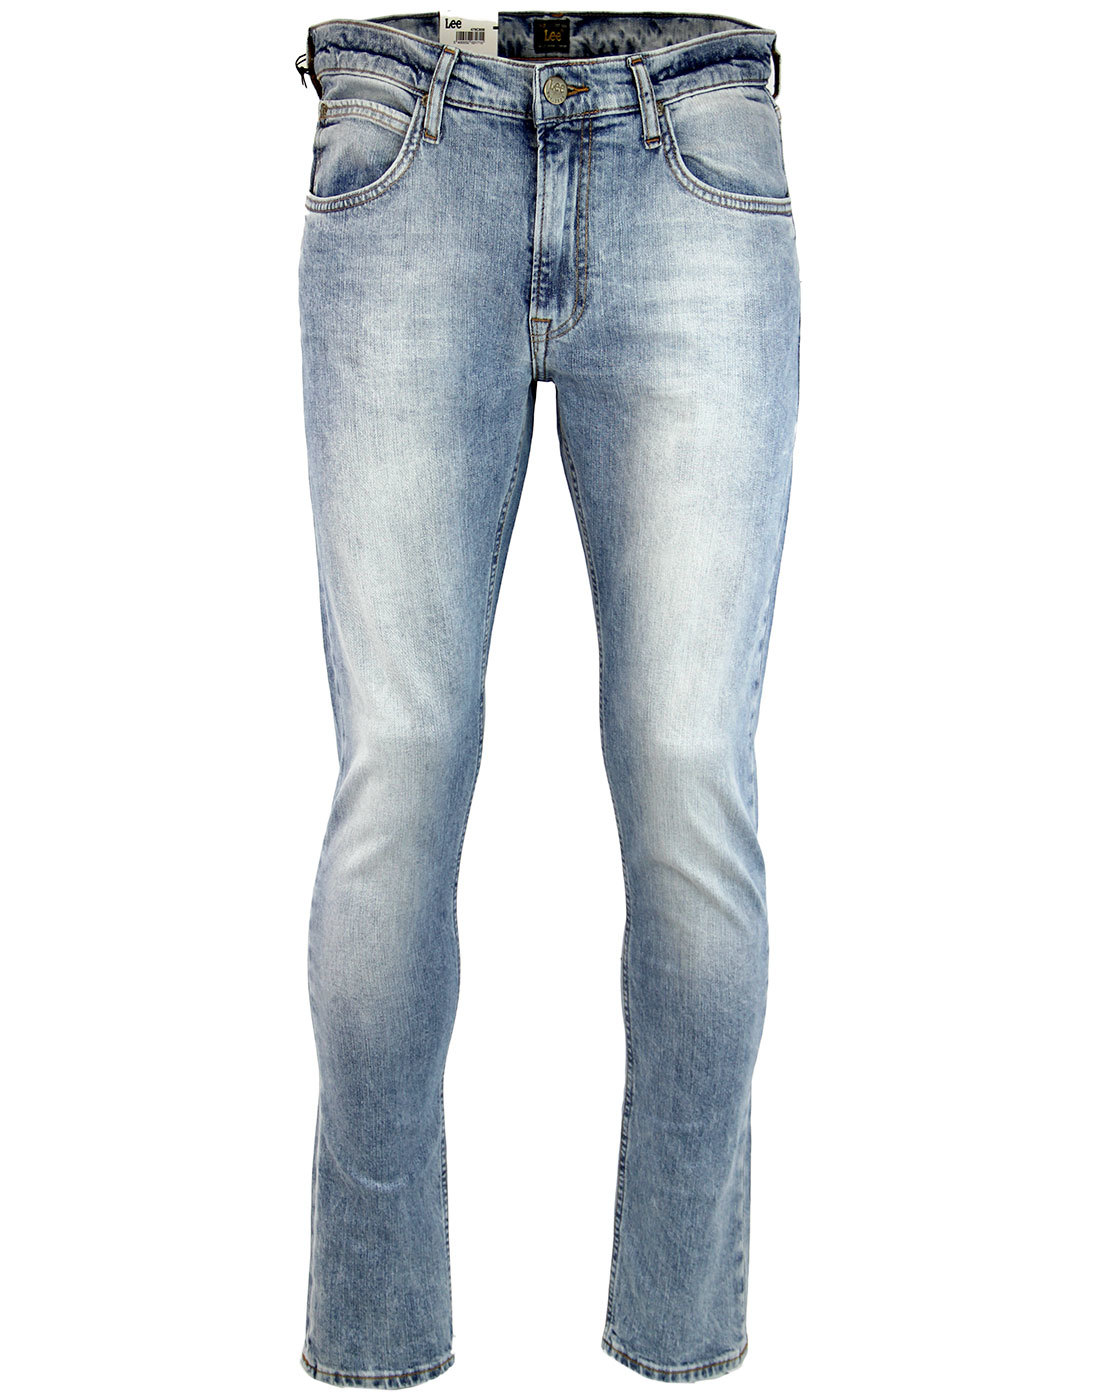 LEE Luke Slim Tapered Every Pair Unique Jeans ICE